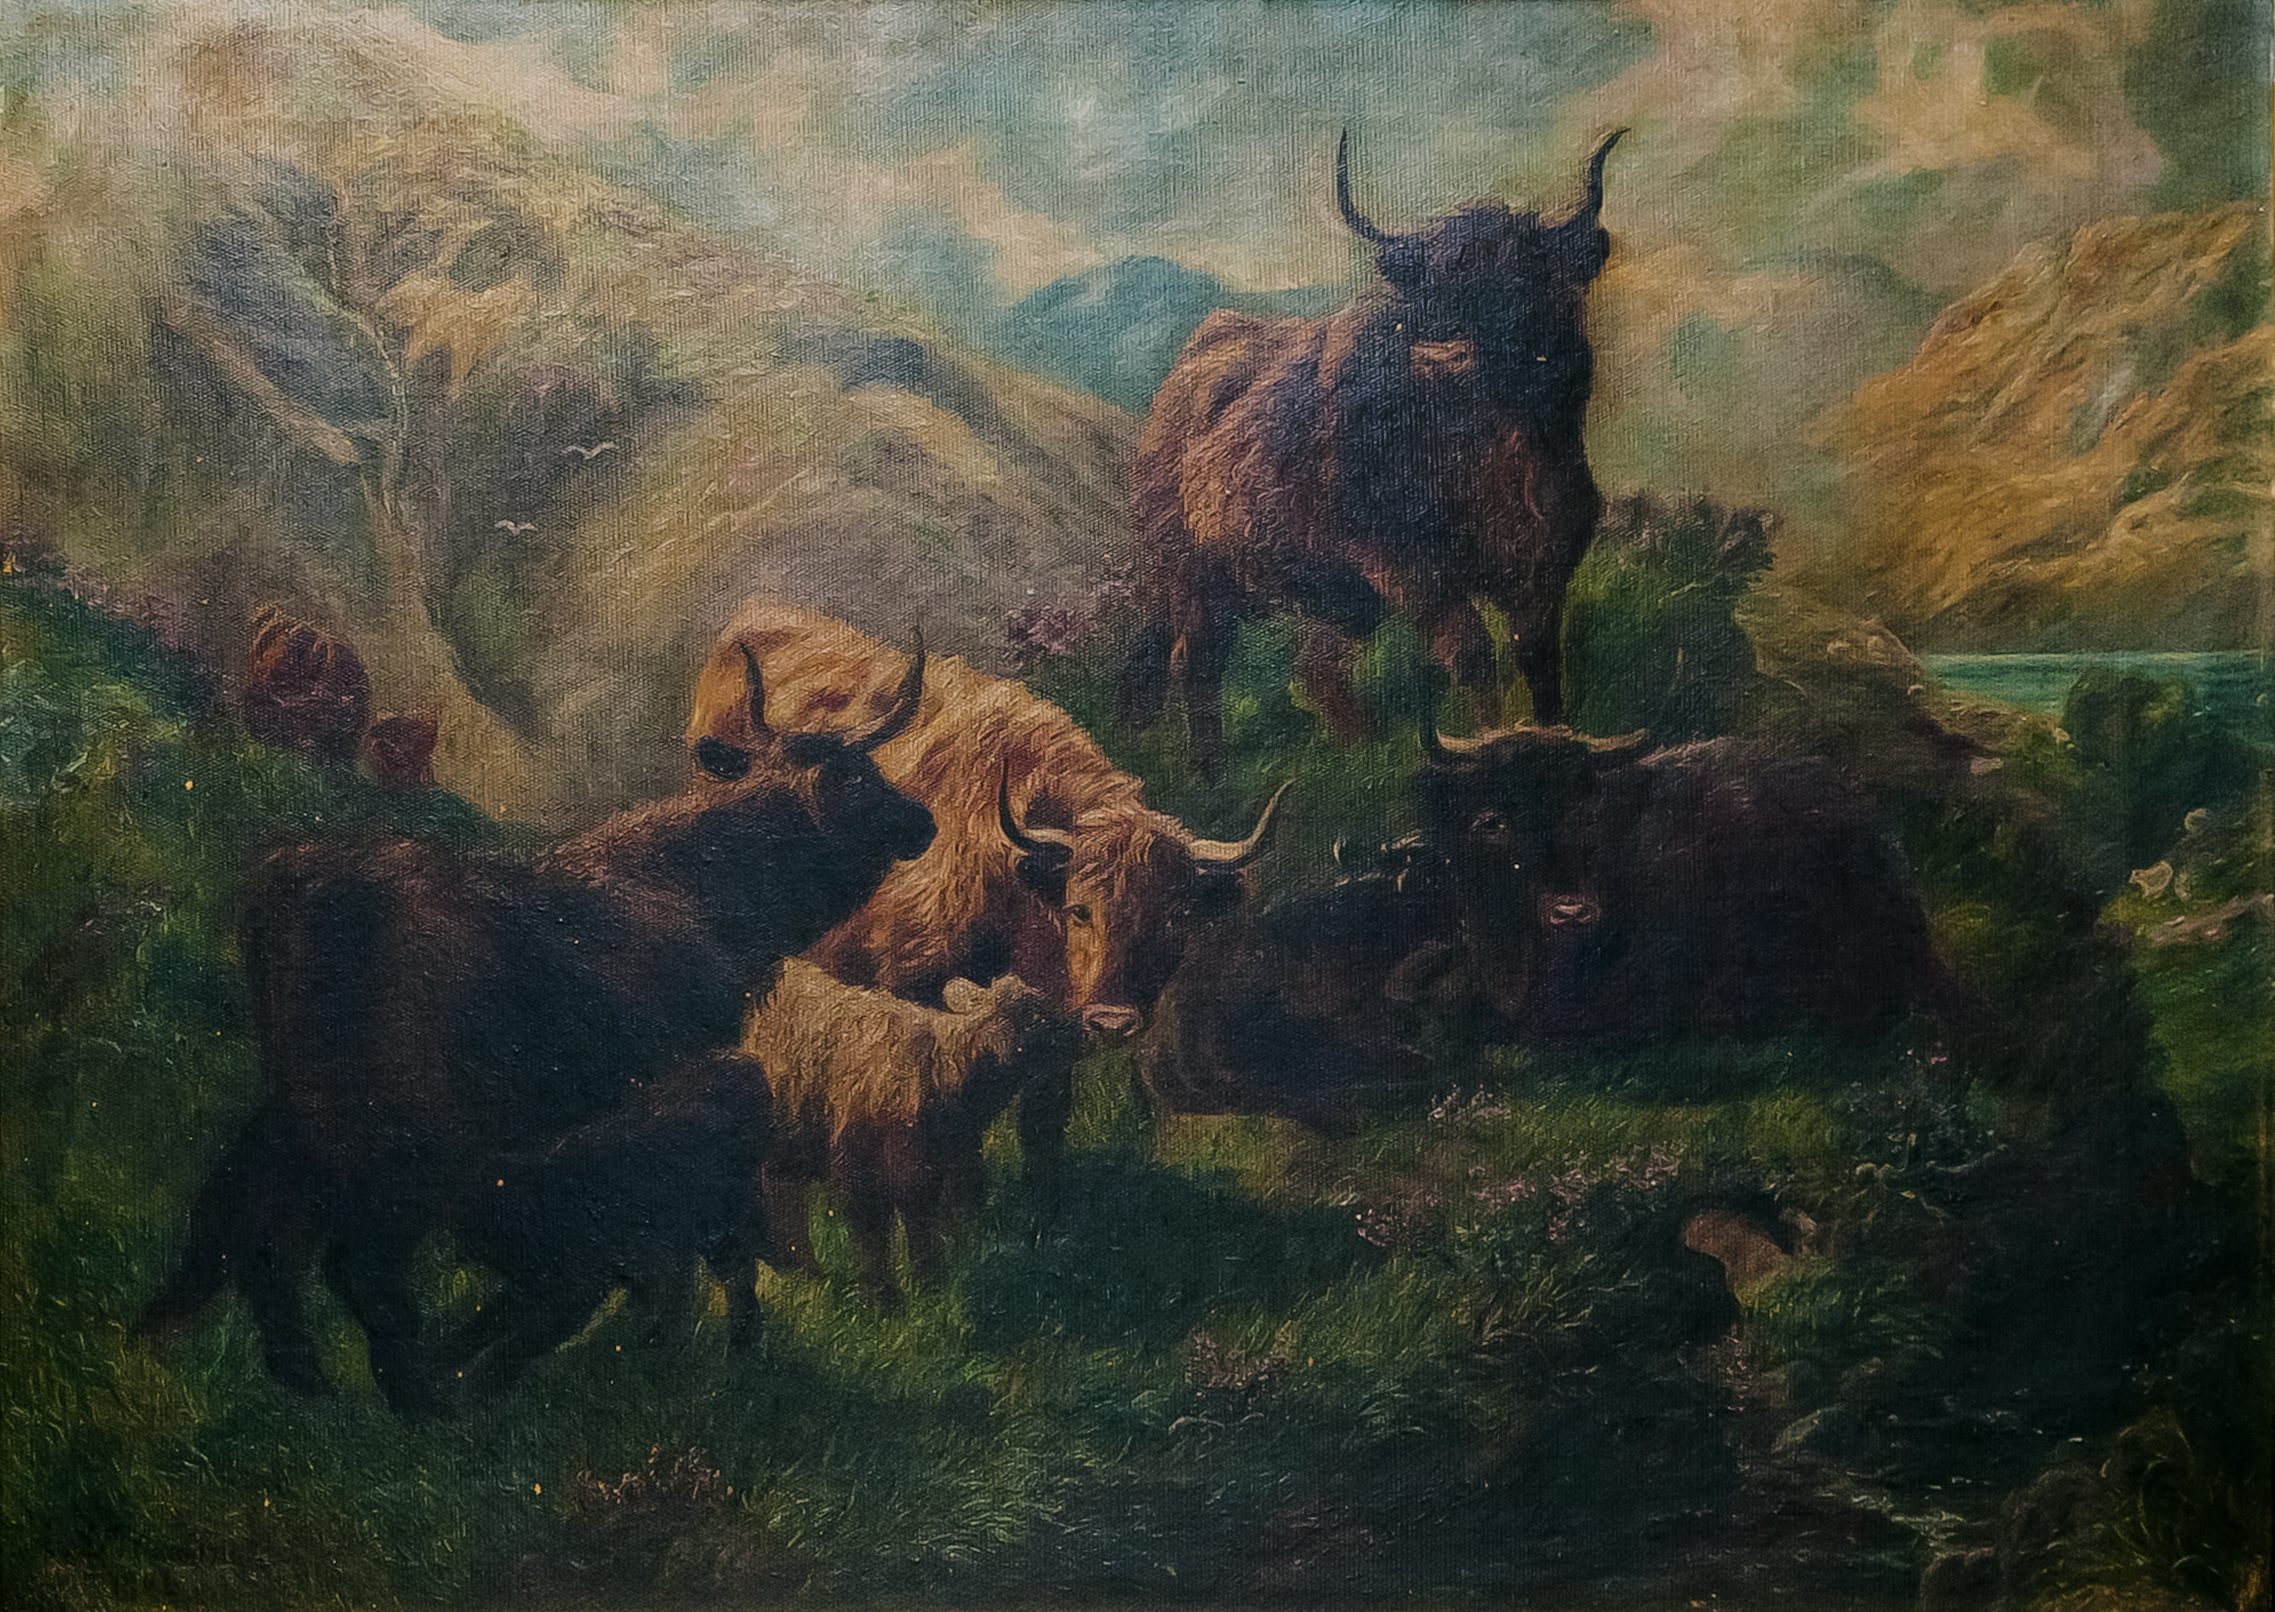 This oil painting depicts cattle in the foreground of a mountainside landscape. The lush green grass contrasts with the cloudy blue sky and the turquoise water of the lake in the background.